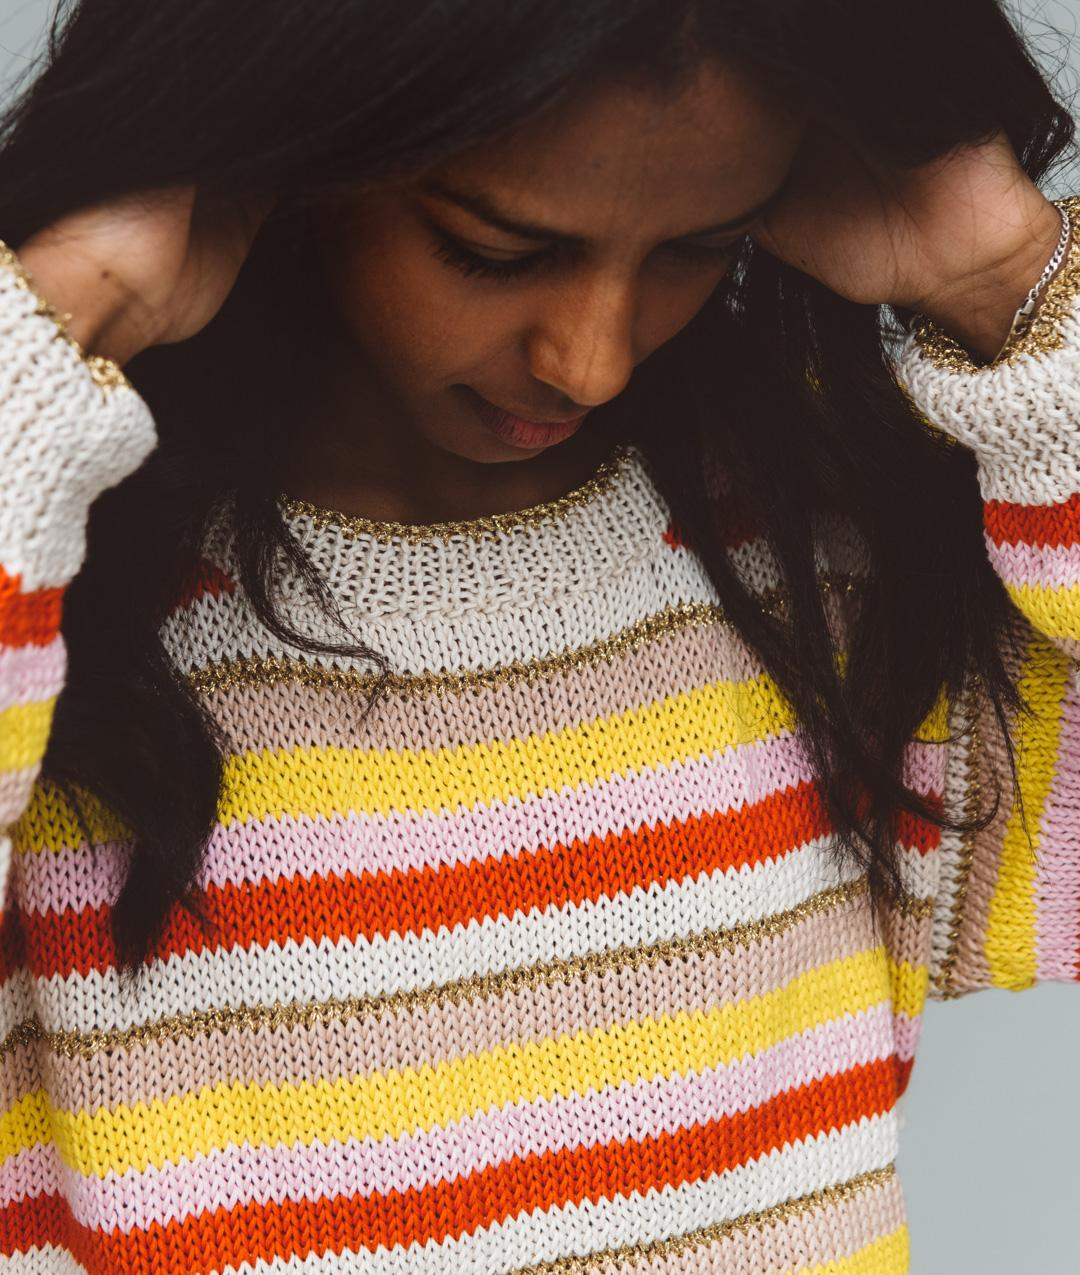 Sweaters and Tops - Cotton - MILLERIGHE SWEATER - 1